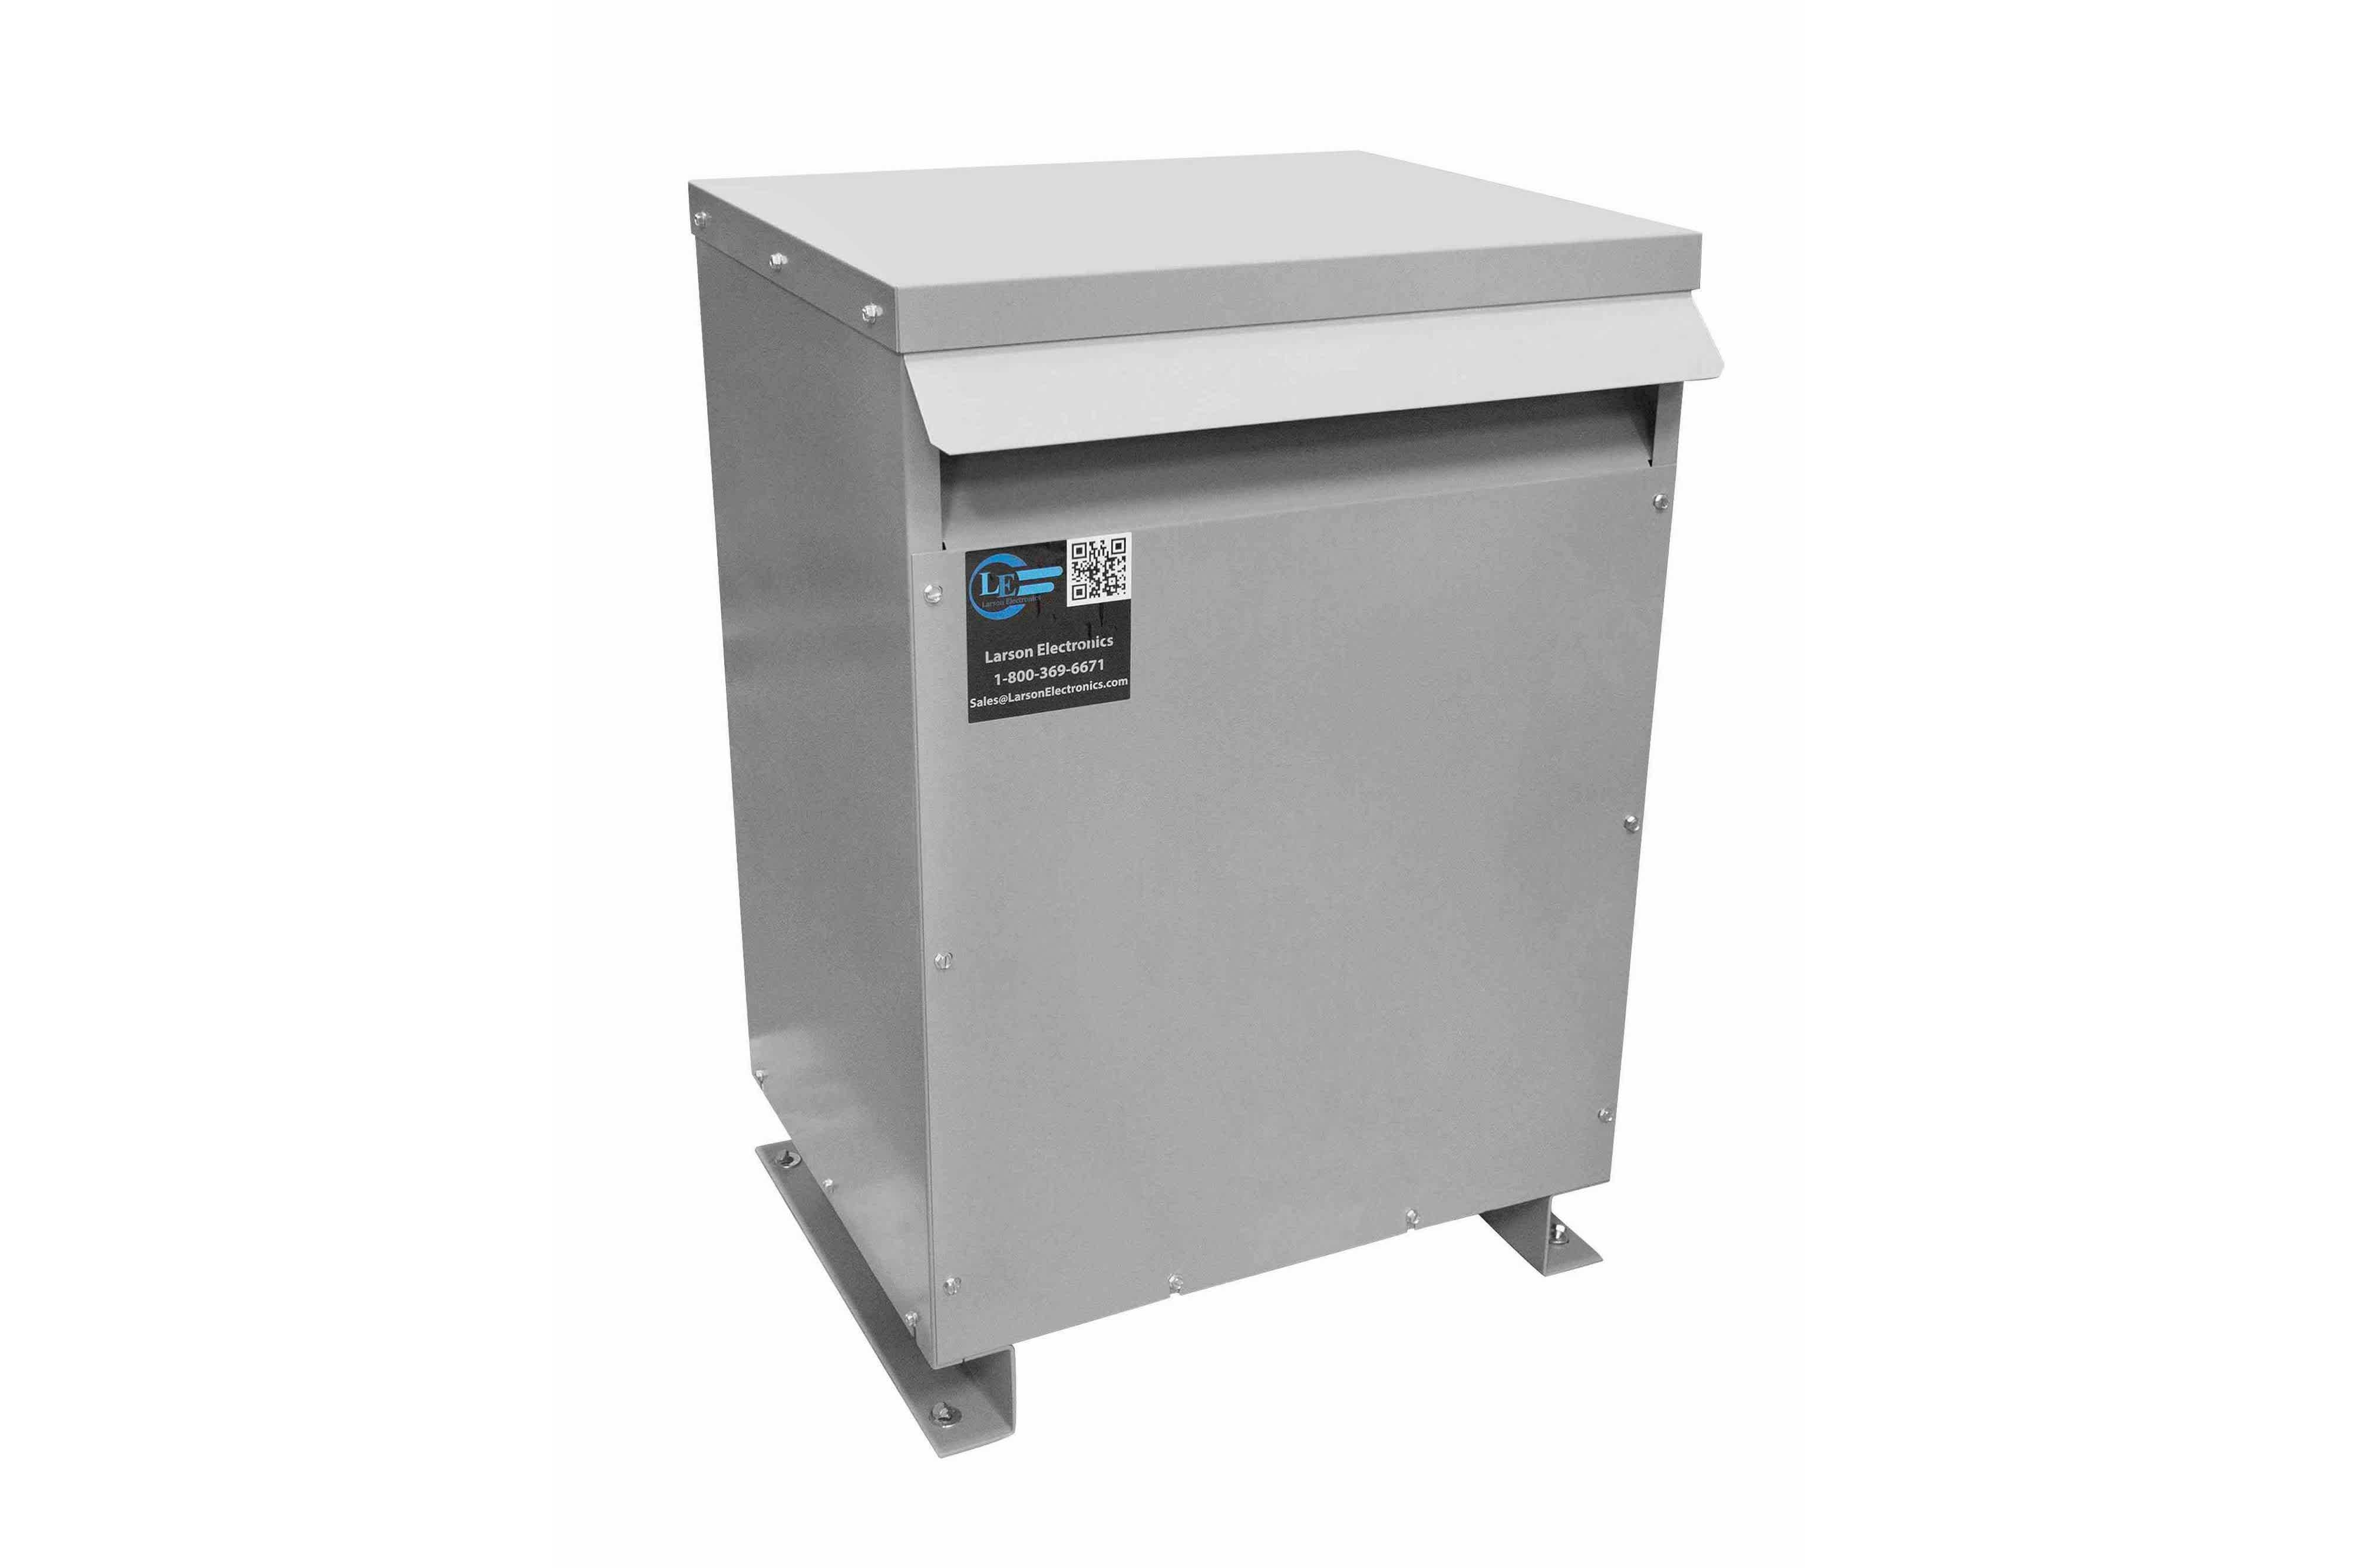 700 kVA 3PH Isolation Transformer, 600V Wye Primary, 415V Delta Secondary, N3R, Ventilated, 60 Hz